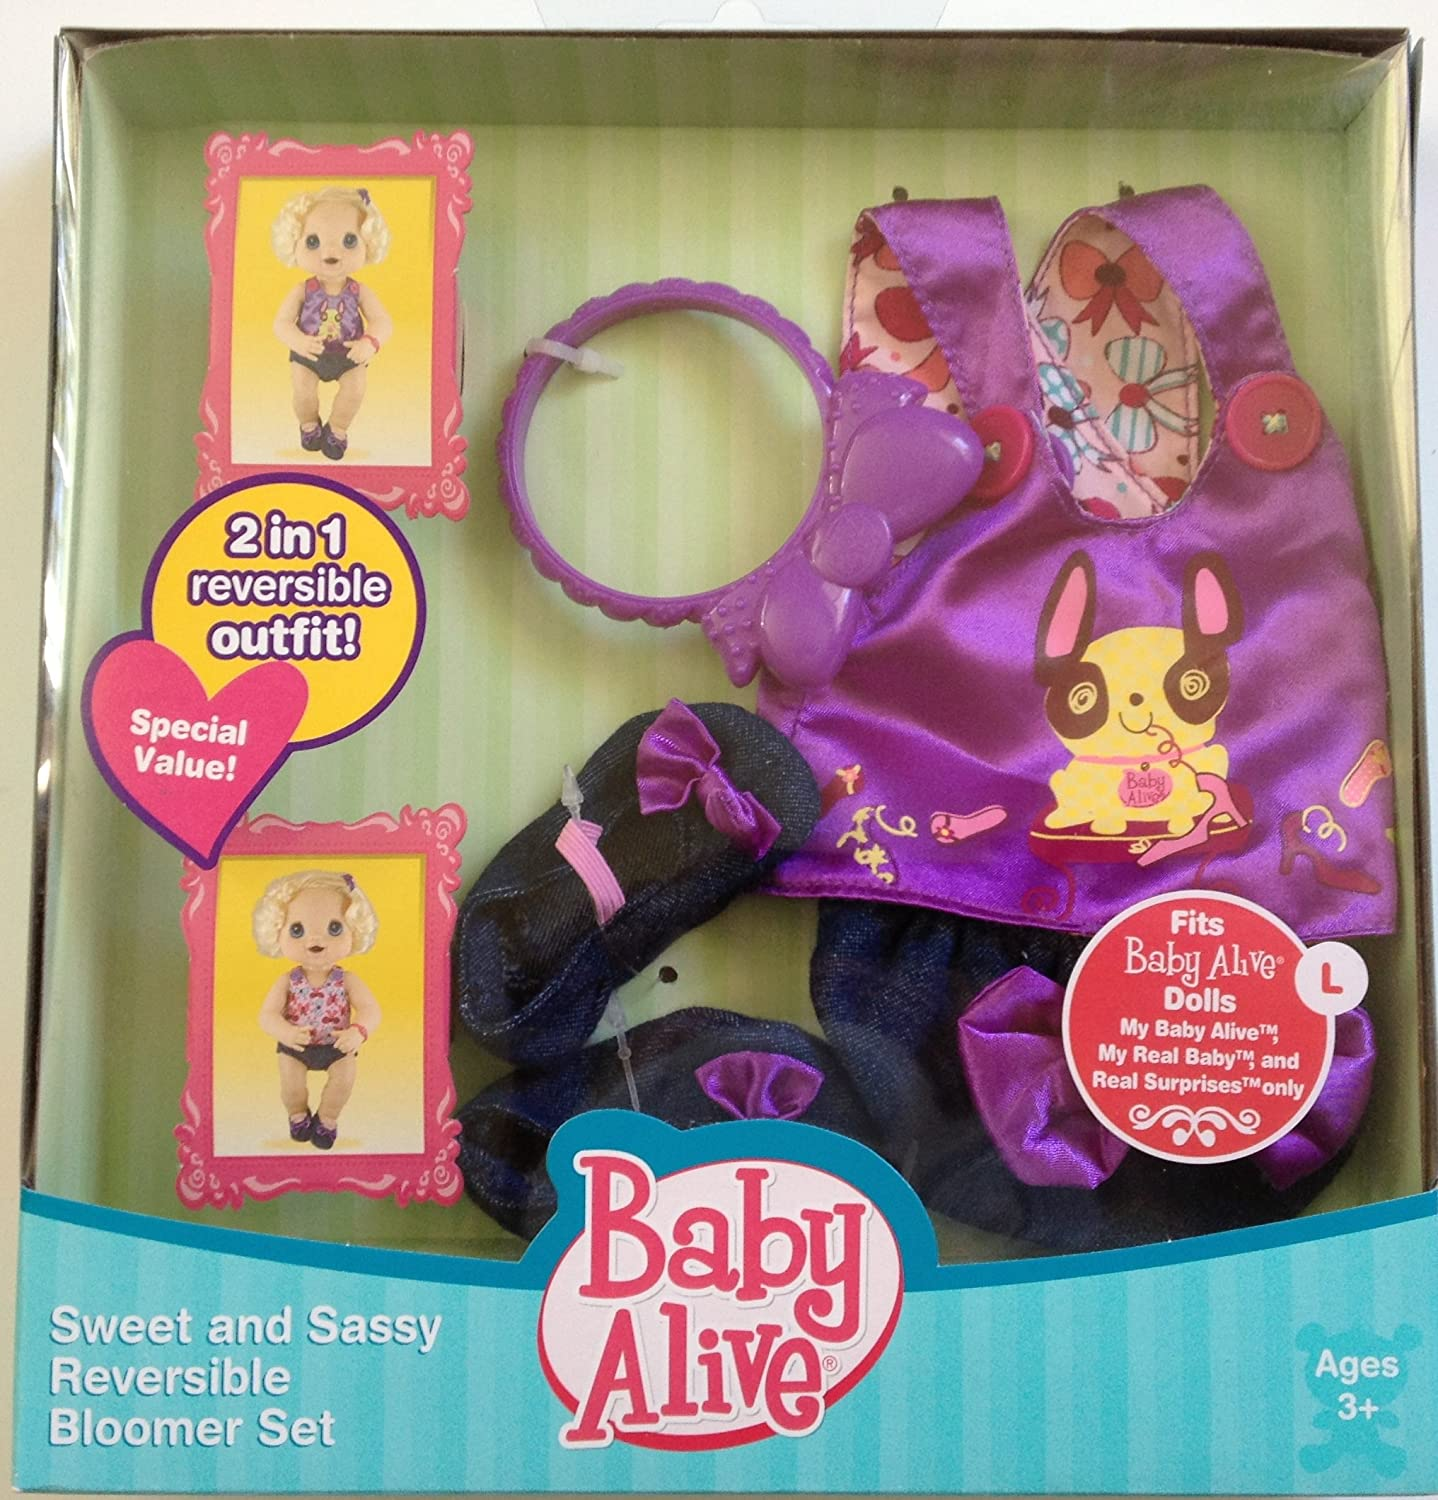 Amazon Baby Alive Sweet and Sassy Reversible Bloomer Set